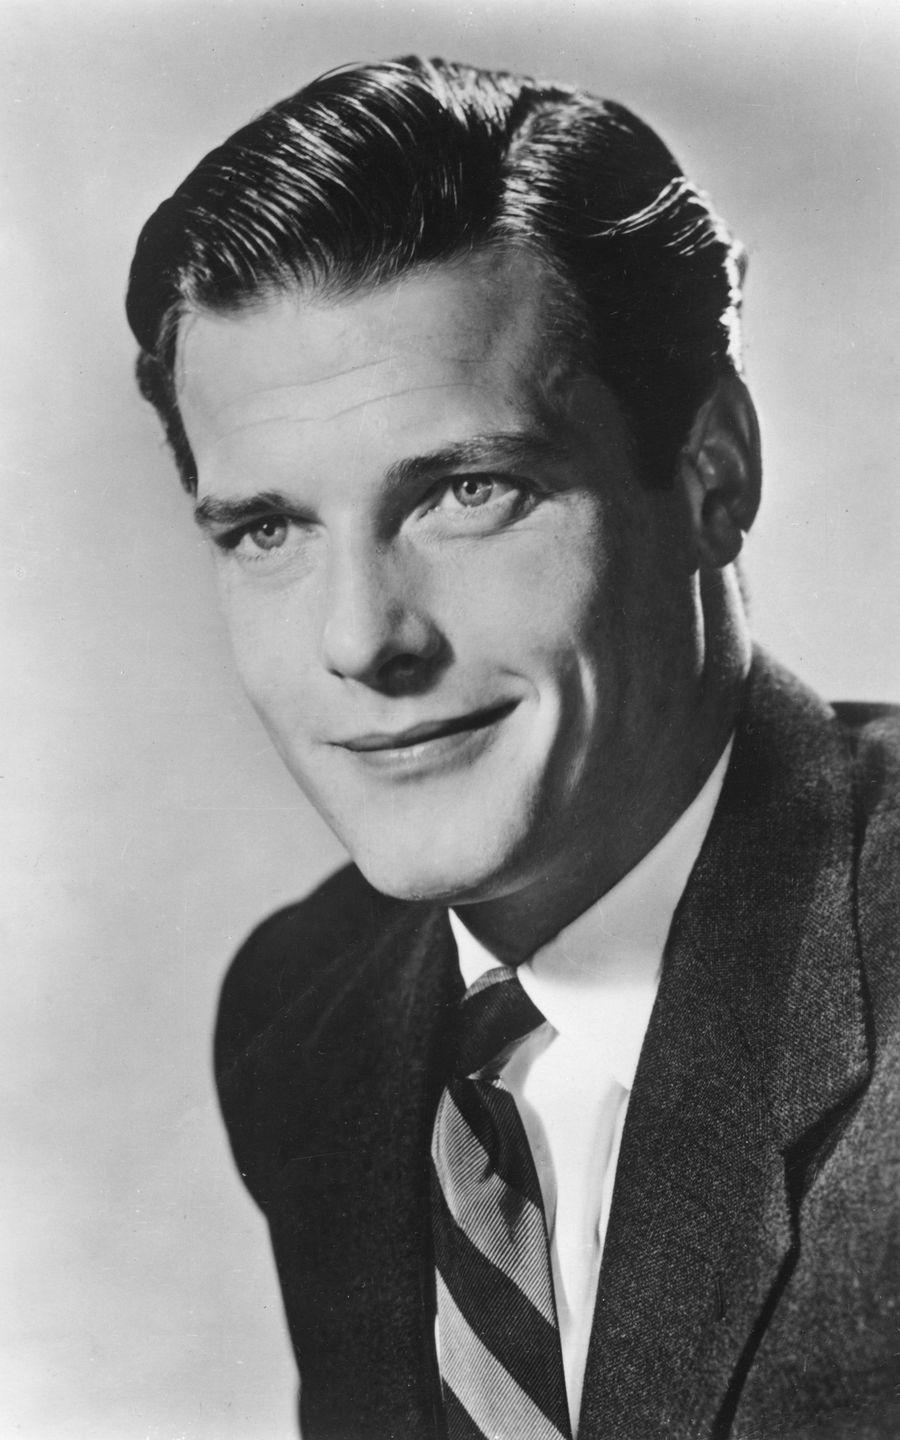 <p>After returning from World War II, Roger Moore received a contract with MGM studios and made his first film, <em>The Last Time I Saw Paris</em> in 1954. After a stint in television, the British actor joined the iconic<em> James Bond</em> franchise, taking over the part from Sean Connery in the '70s.</p>